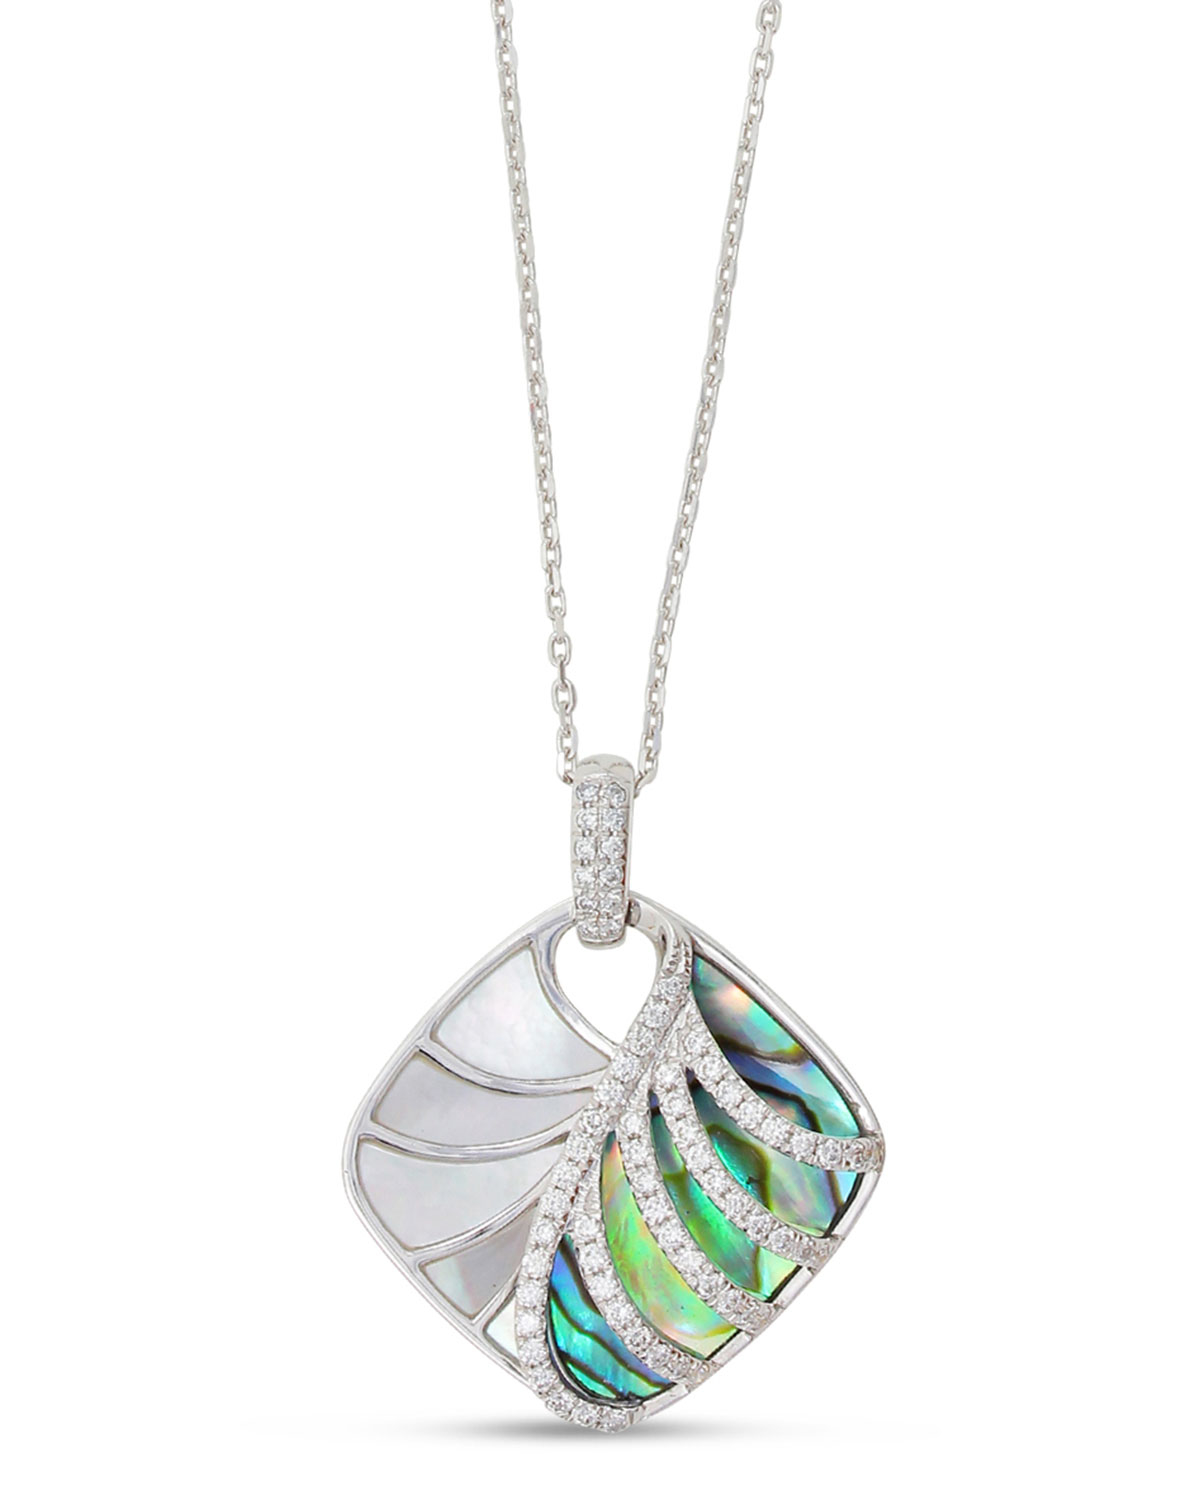 Frederic Sage Venus 18k White Gold & Abalone Pendant. Sphere Necklace. Solid Gold Anklet. F Color Diamond. Clemson Bracelet. Thin Mens Wedding Band. Thin Gold Necklace. Twisted Gold Bangle. Silver Chain Anklet